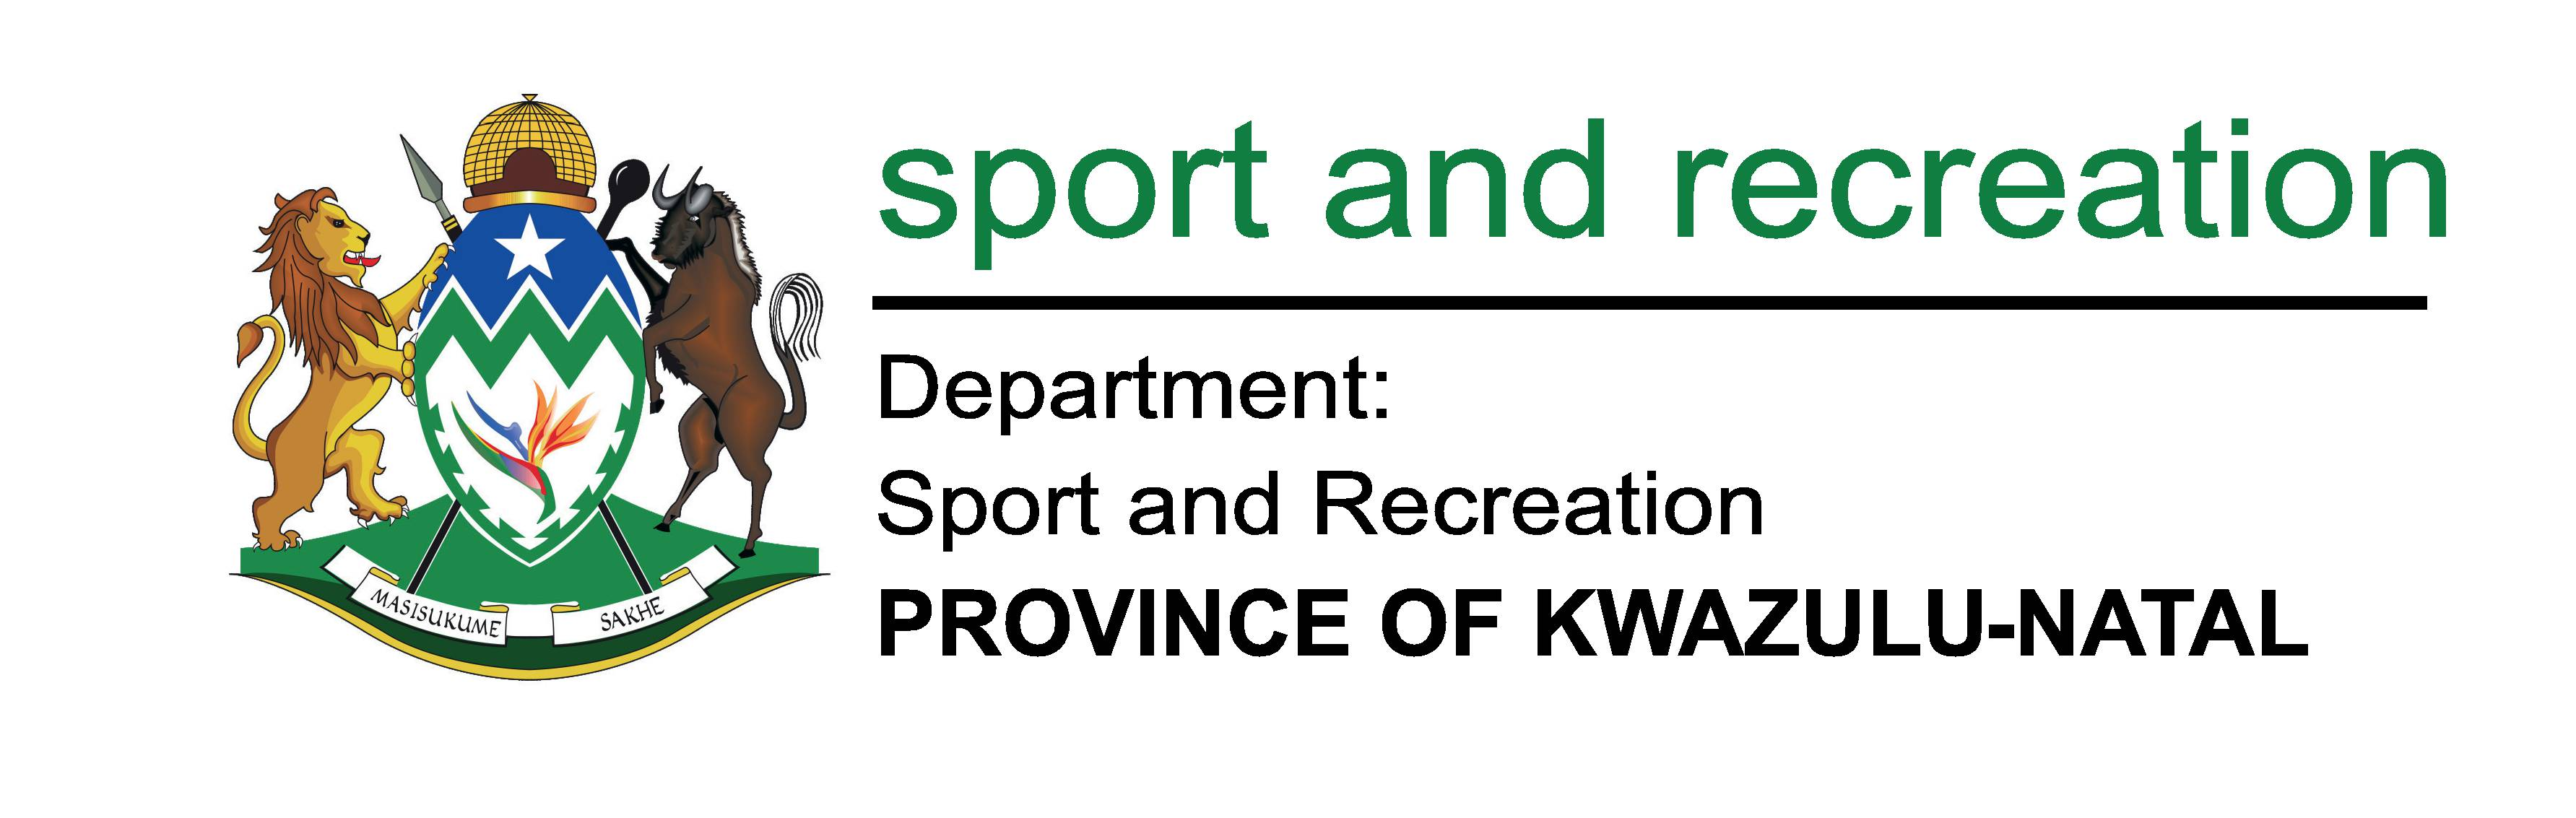 KZN Department of Sport and Recreation